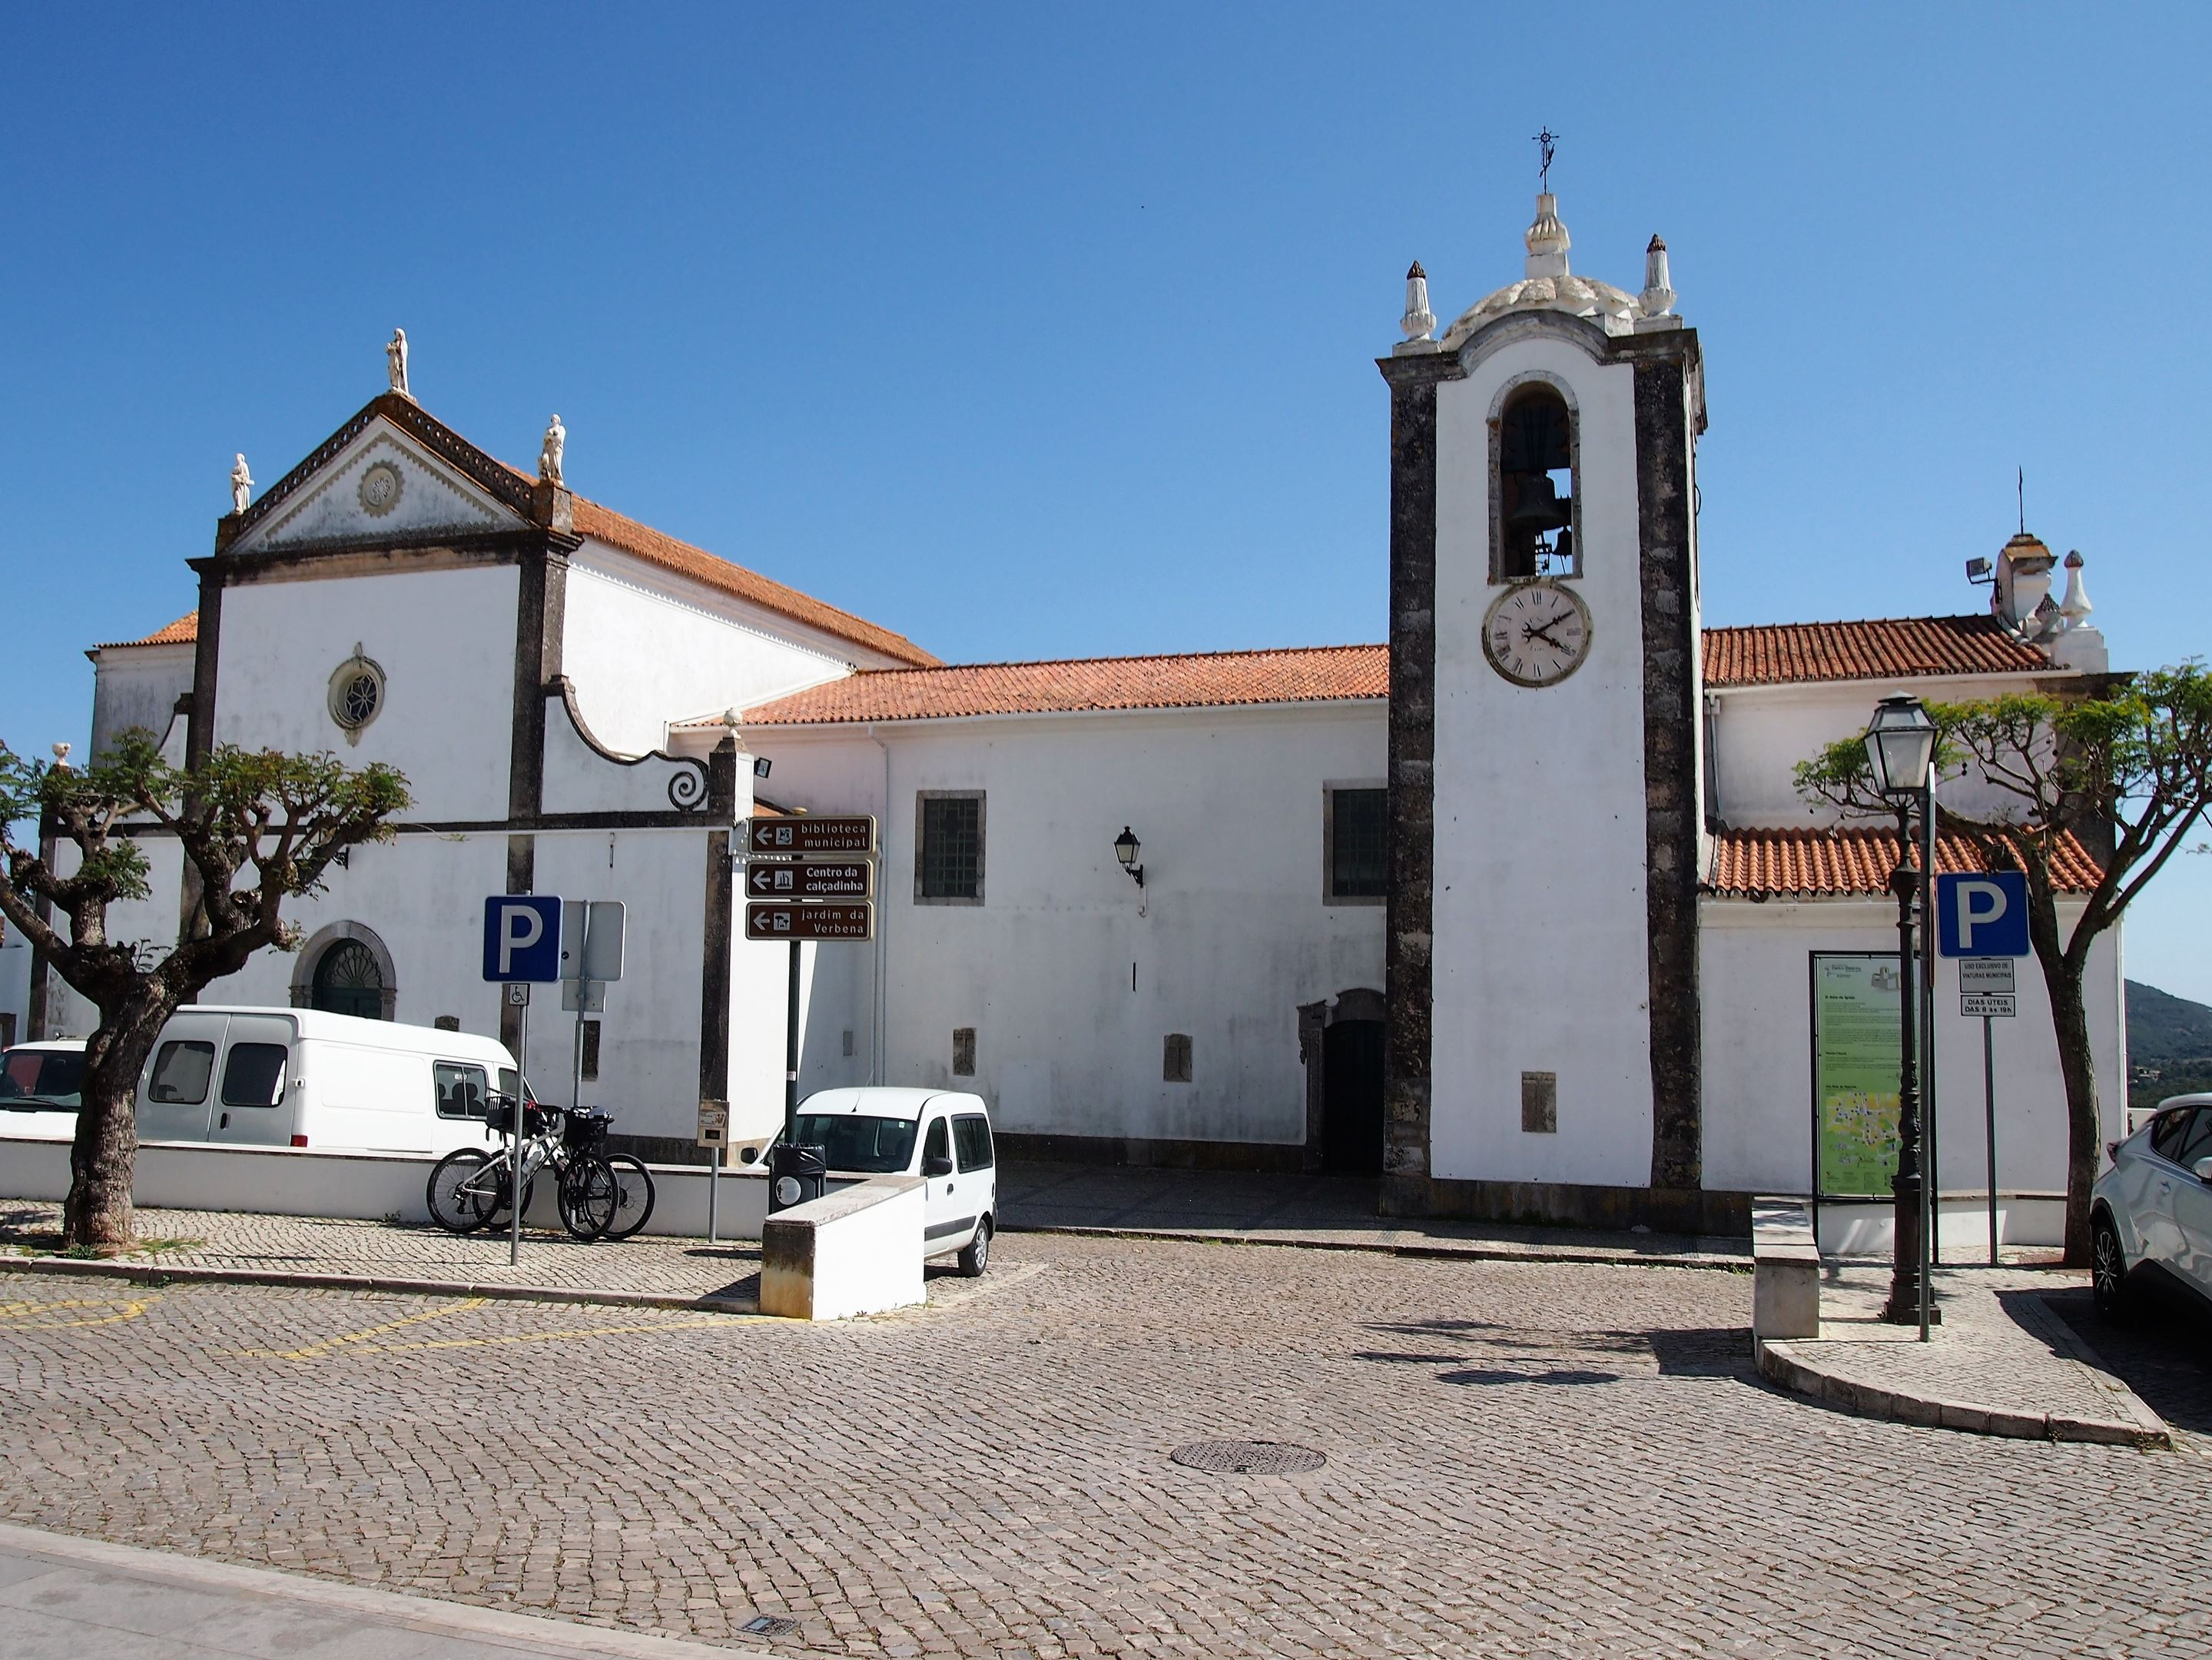 The Igreja Matriz de São Brás de Alportel, the mother church for the town.